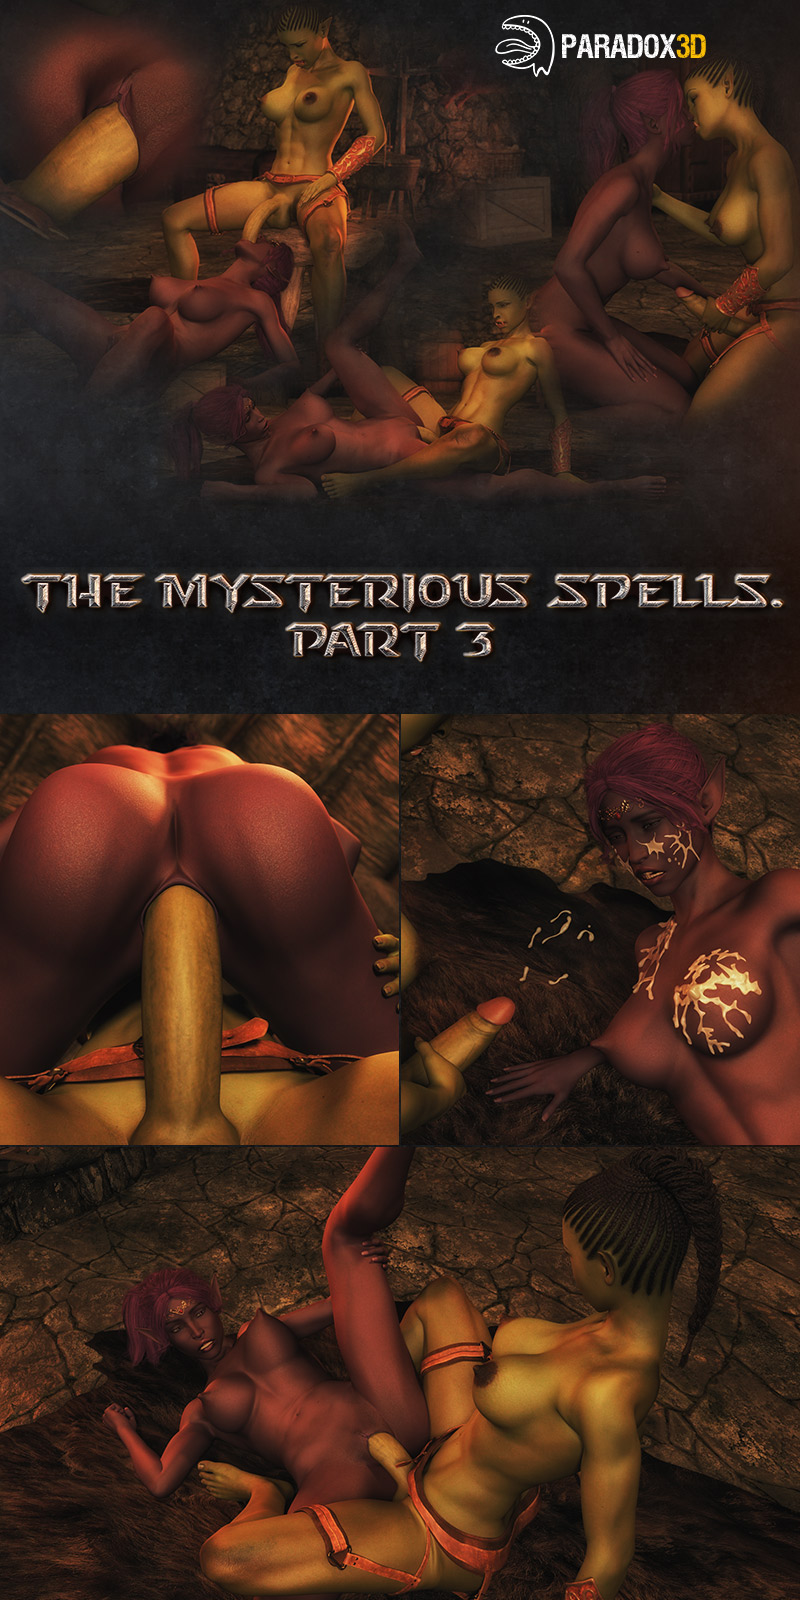 The Mysterious Spells: Part 3